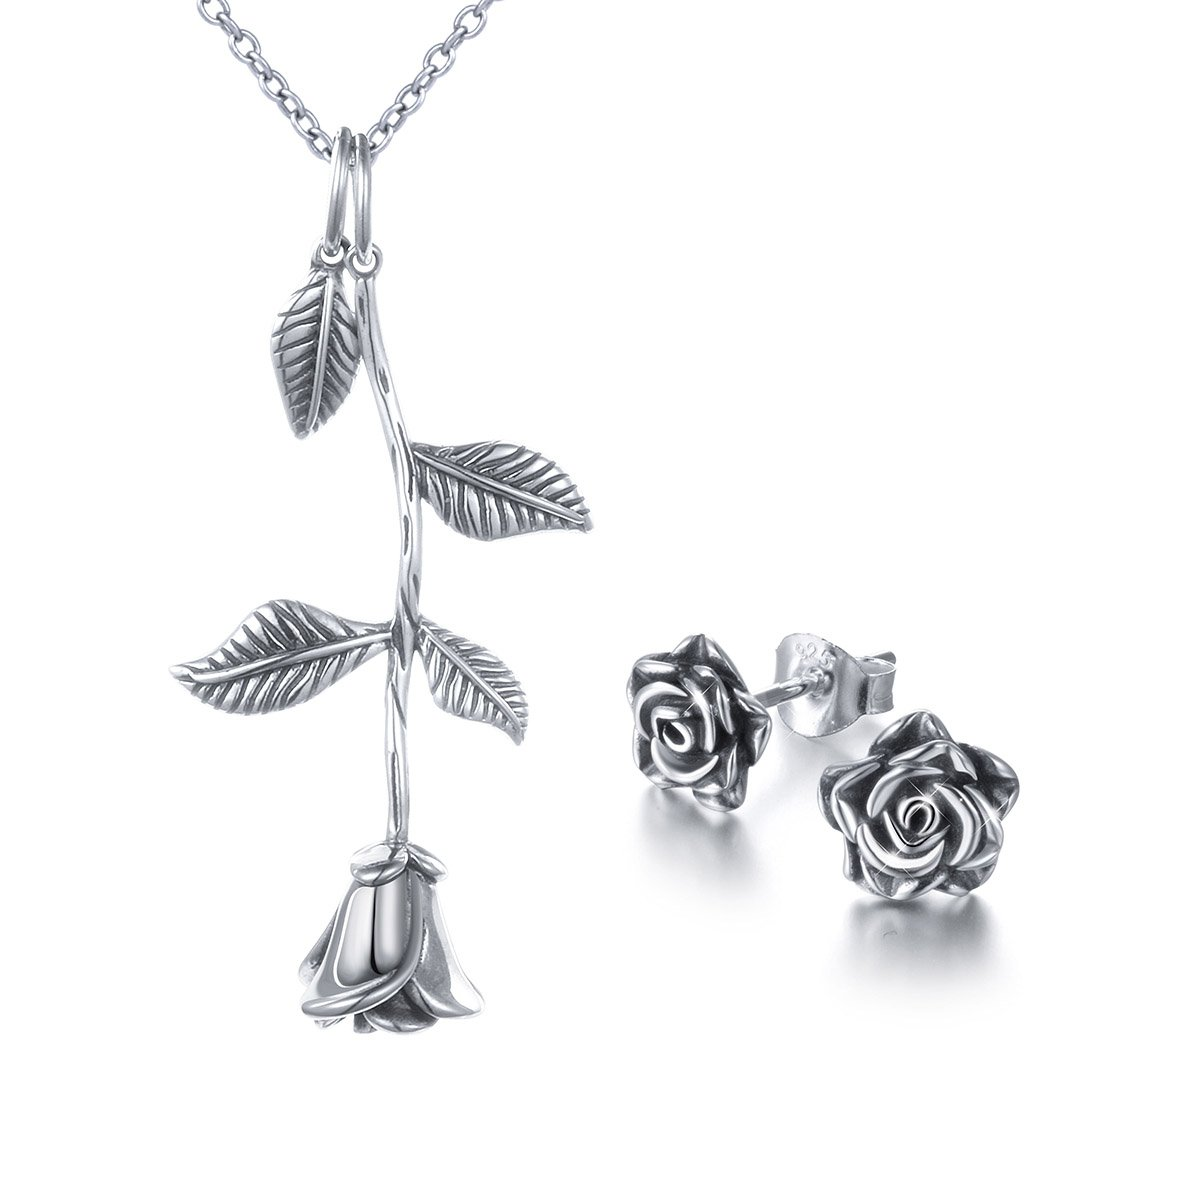 ALPHM S925 Sterling Silver Rose Flower Jewelry Sets Oxidized Pendant Necklace Earrings Set for Women